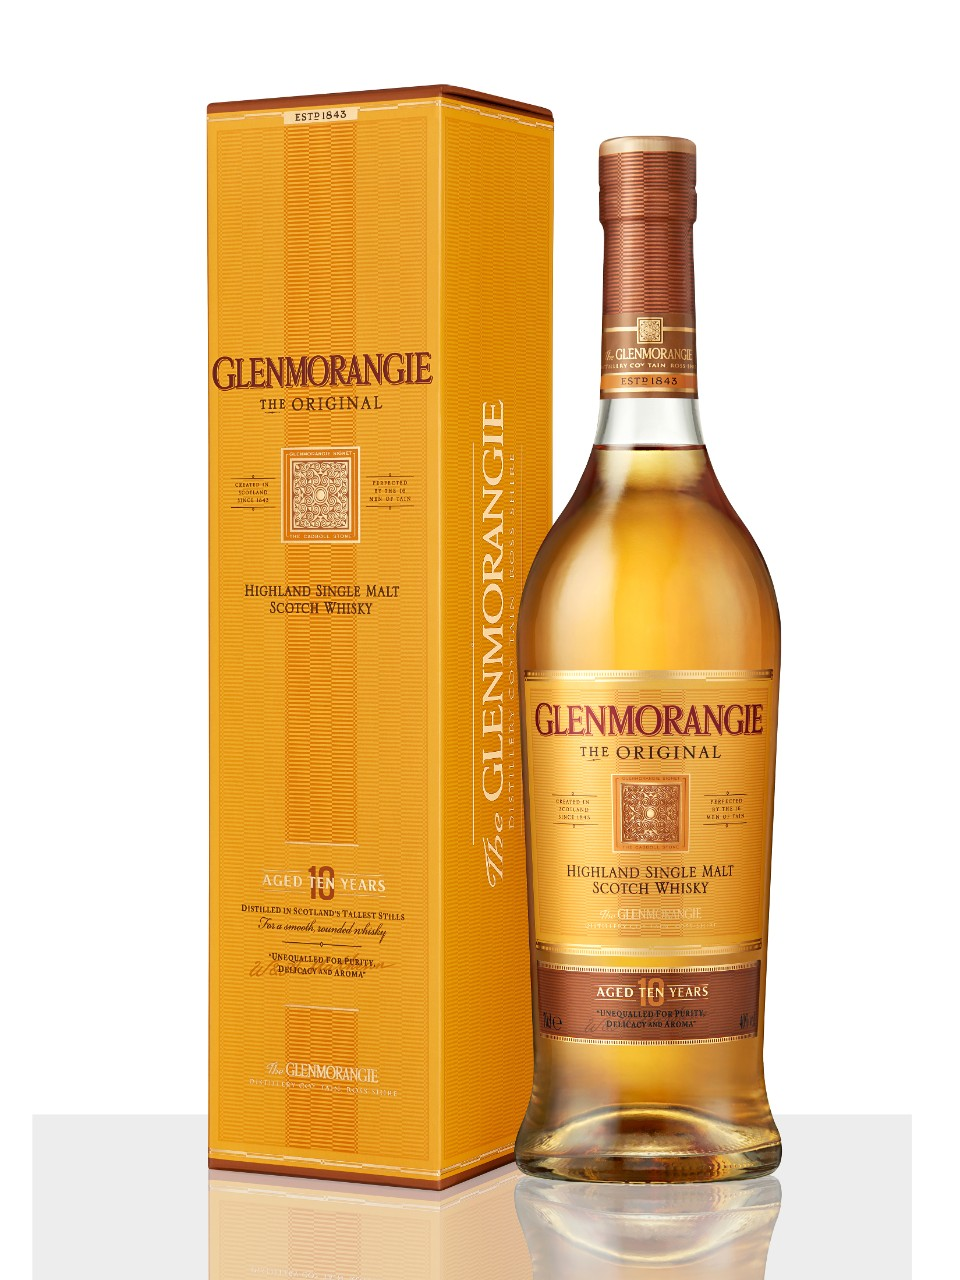 Glenmorangie Original Highland Single Malt Scotch Whisky from LCBO